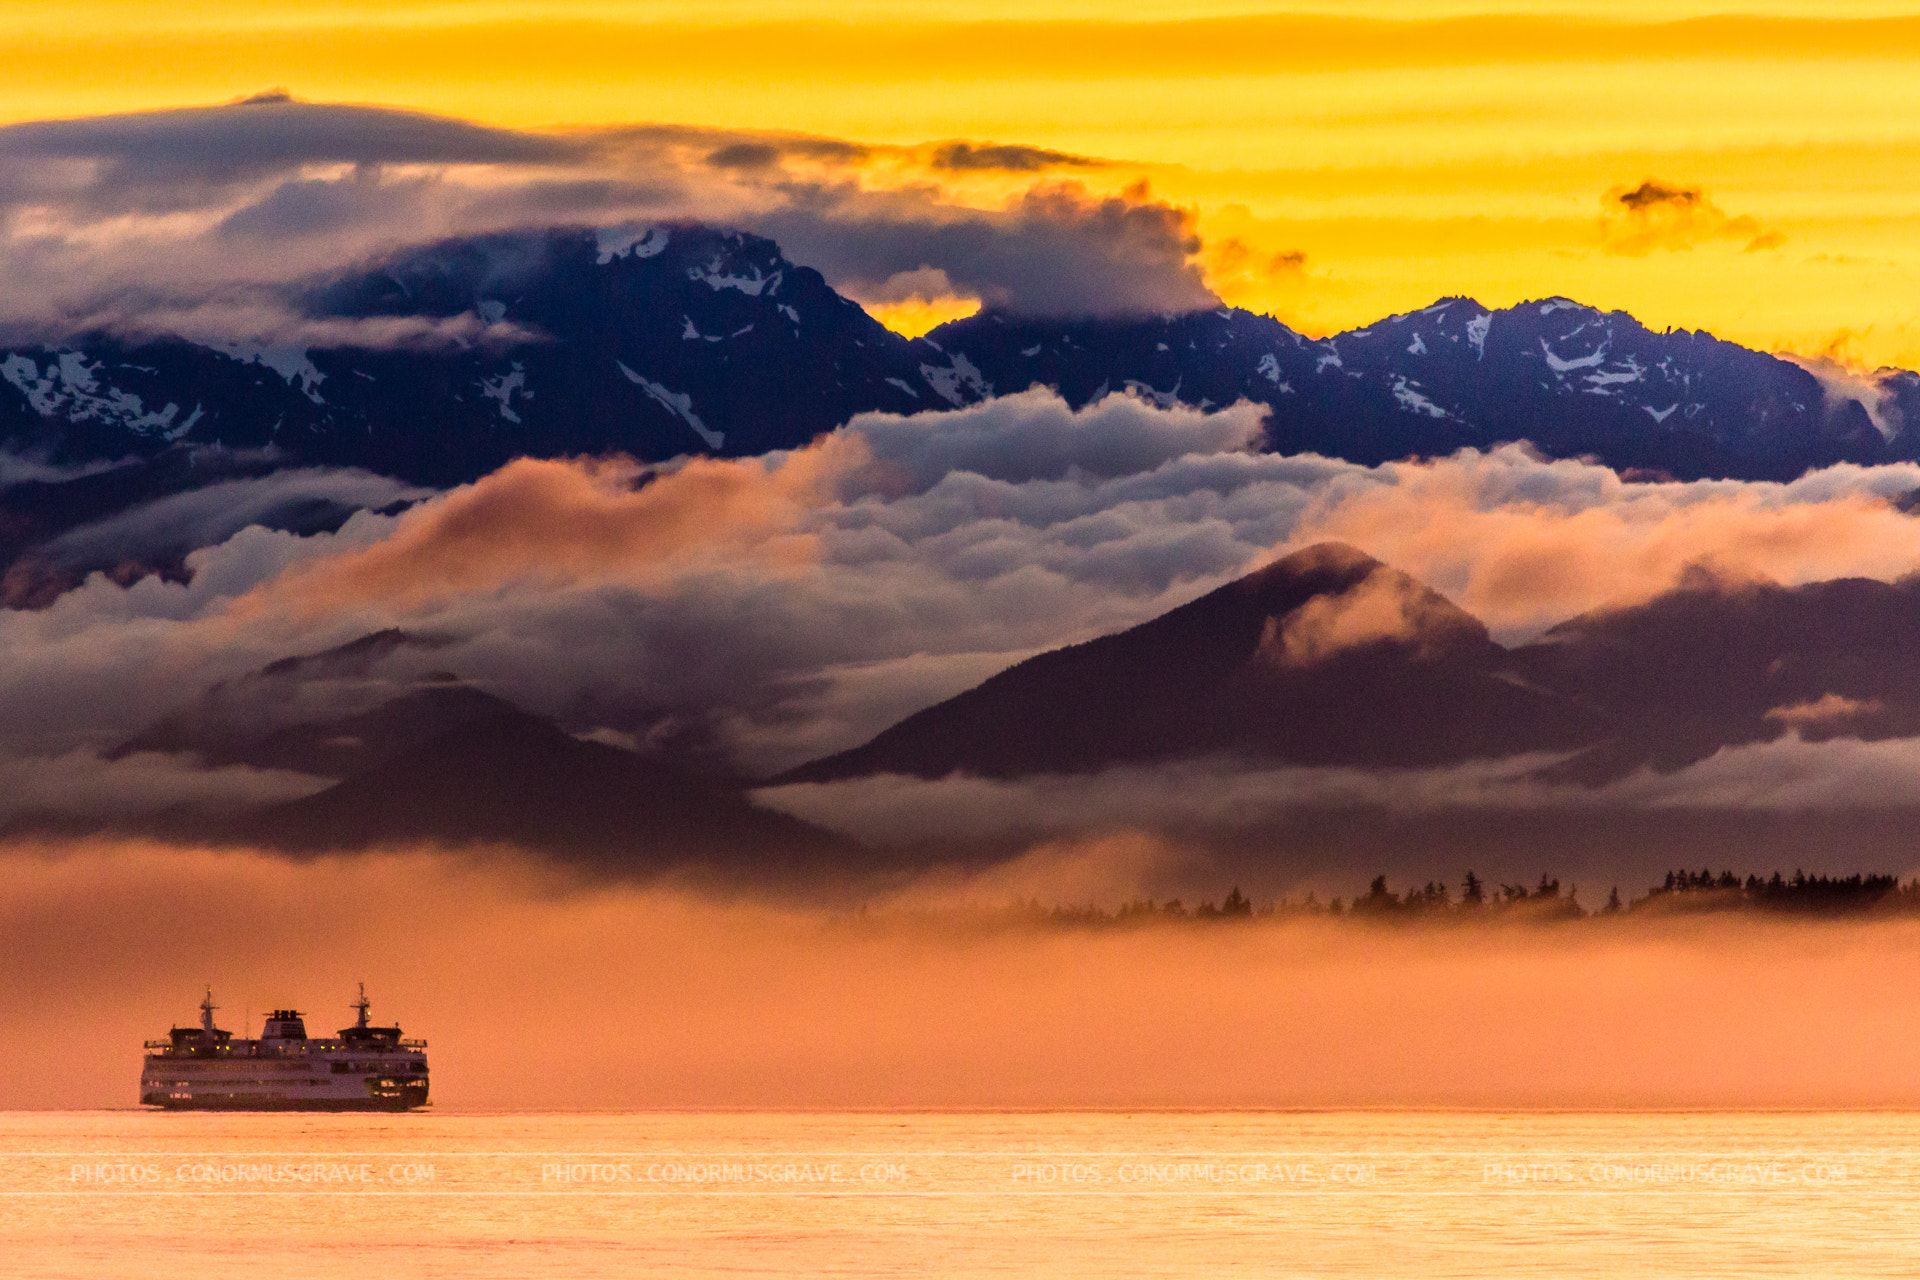 Photograph Bainbridge Island Ferry Coming out of the Fog by Conor Musgrave on 500px